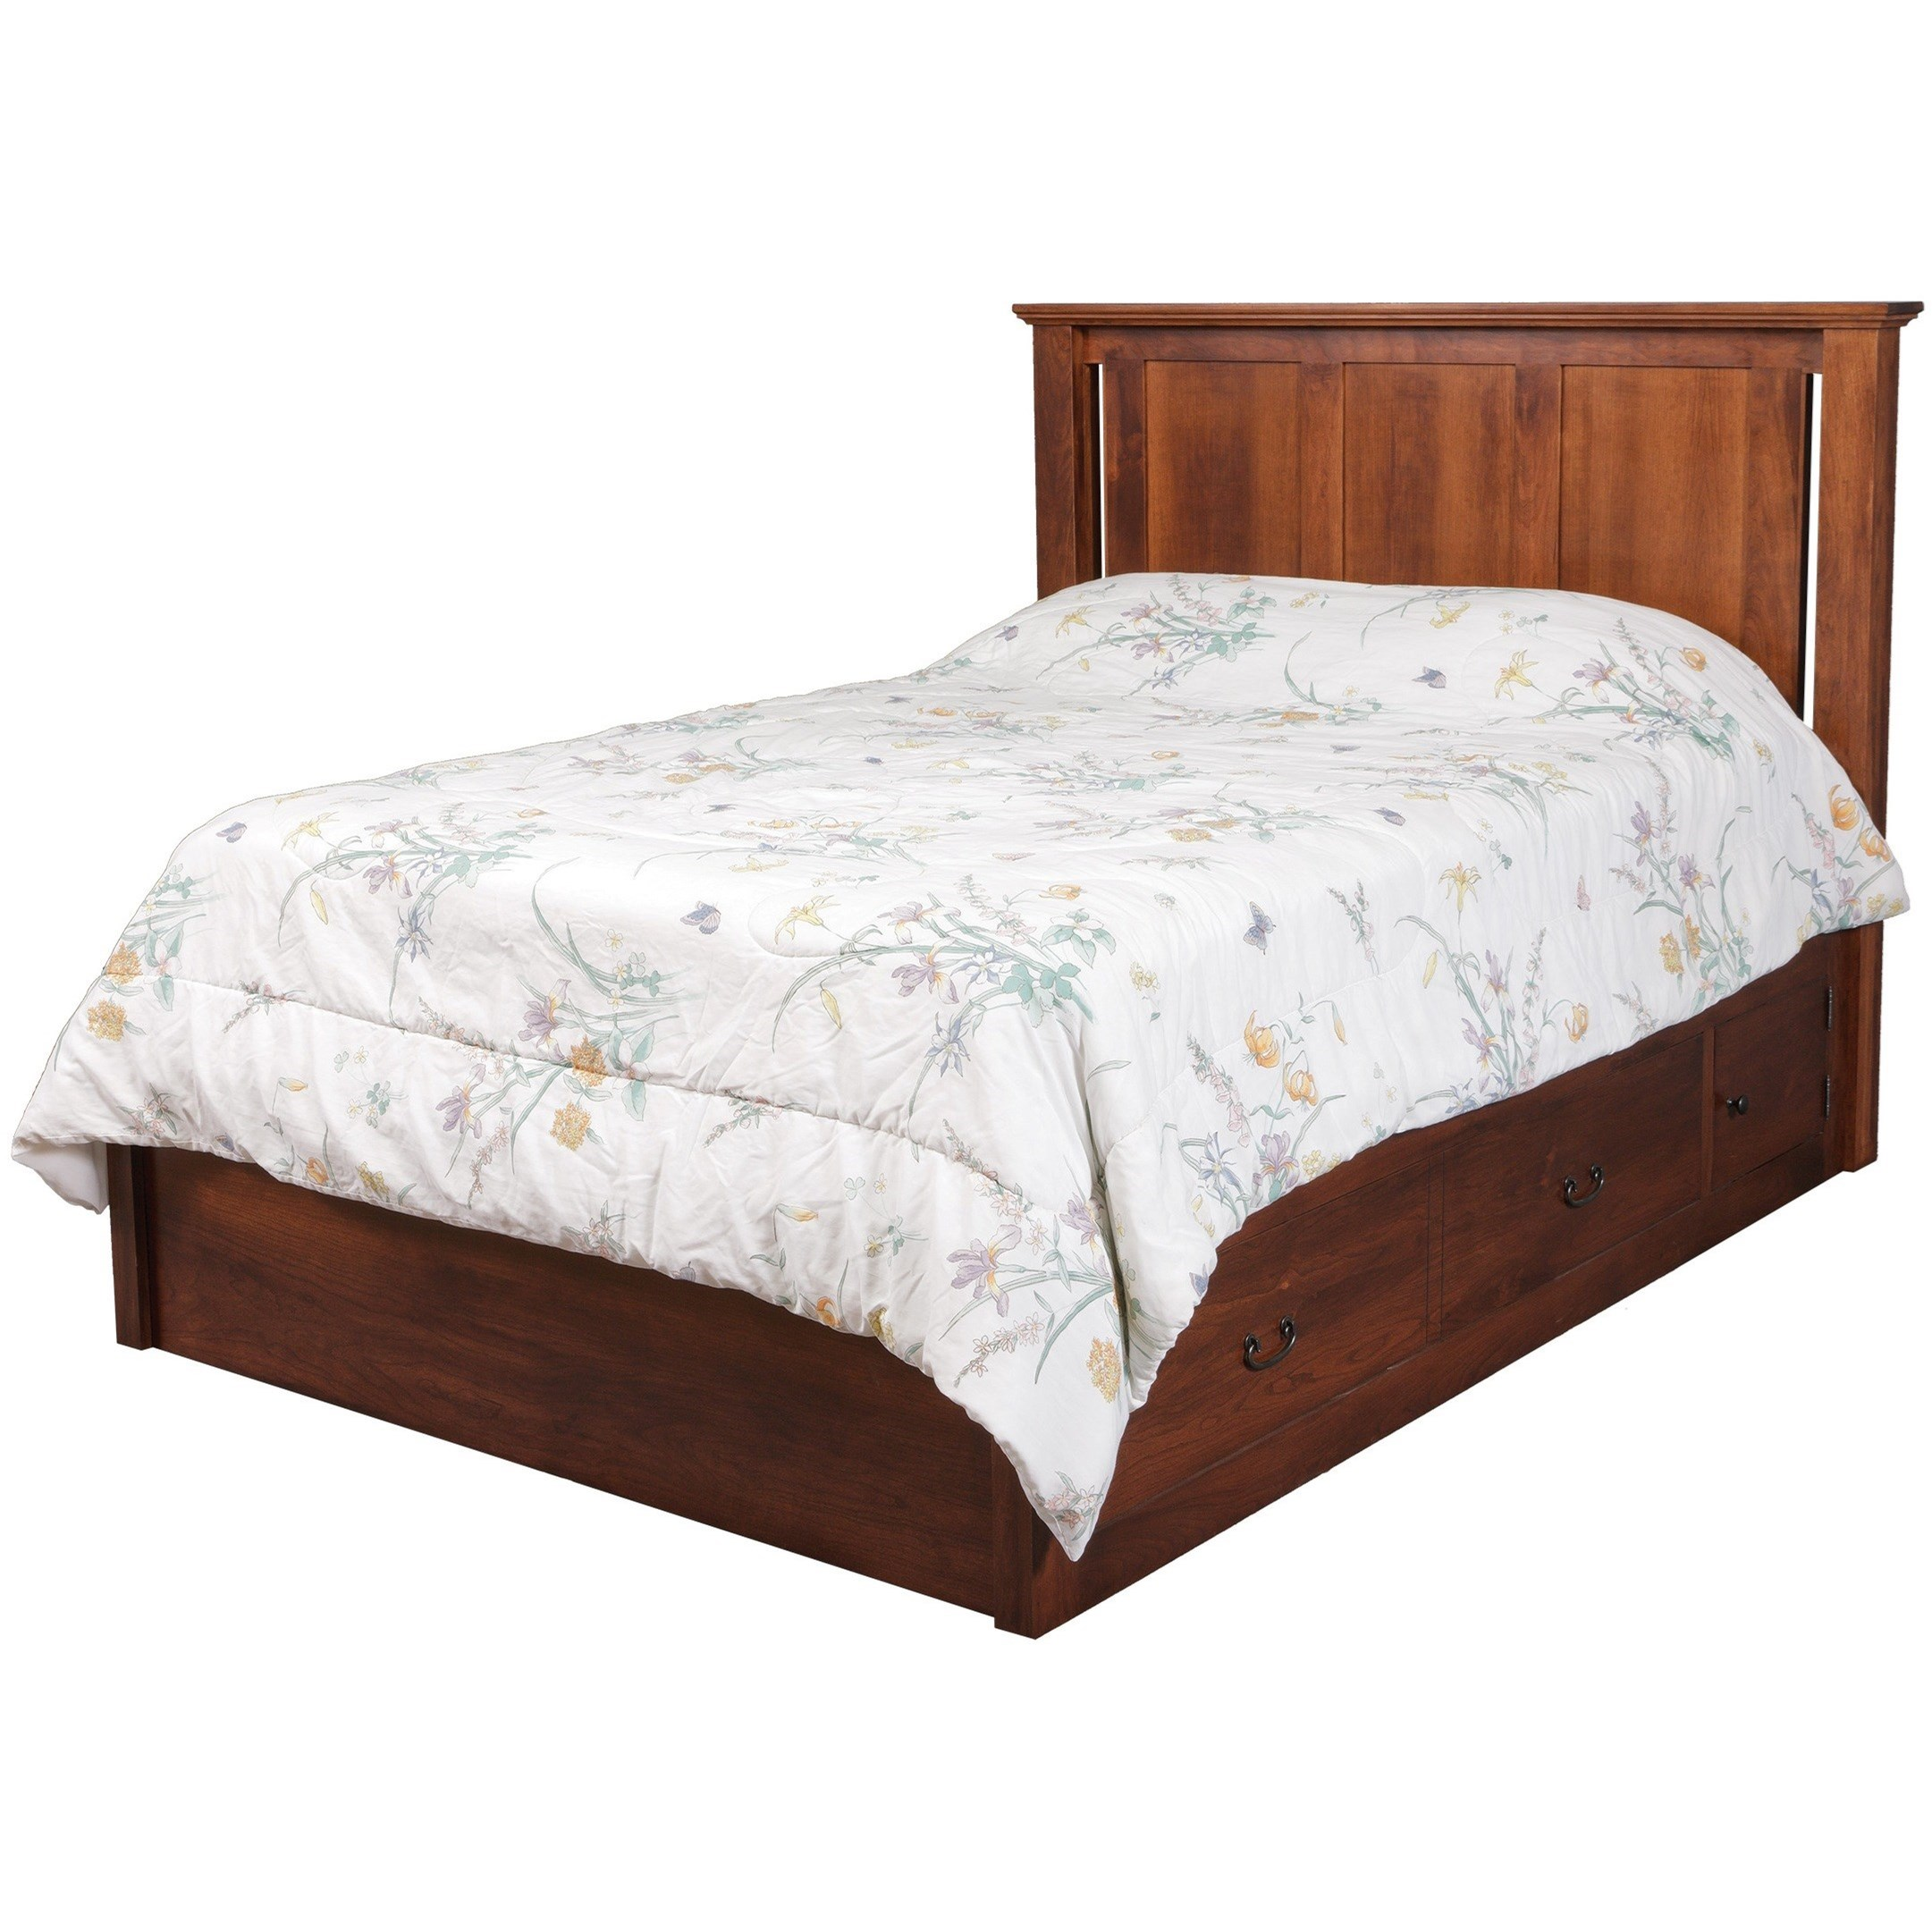 Elegance Queen Pedestal Bed by Daniel's Amish at Saugerties Furniture Mart